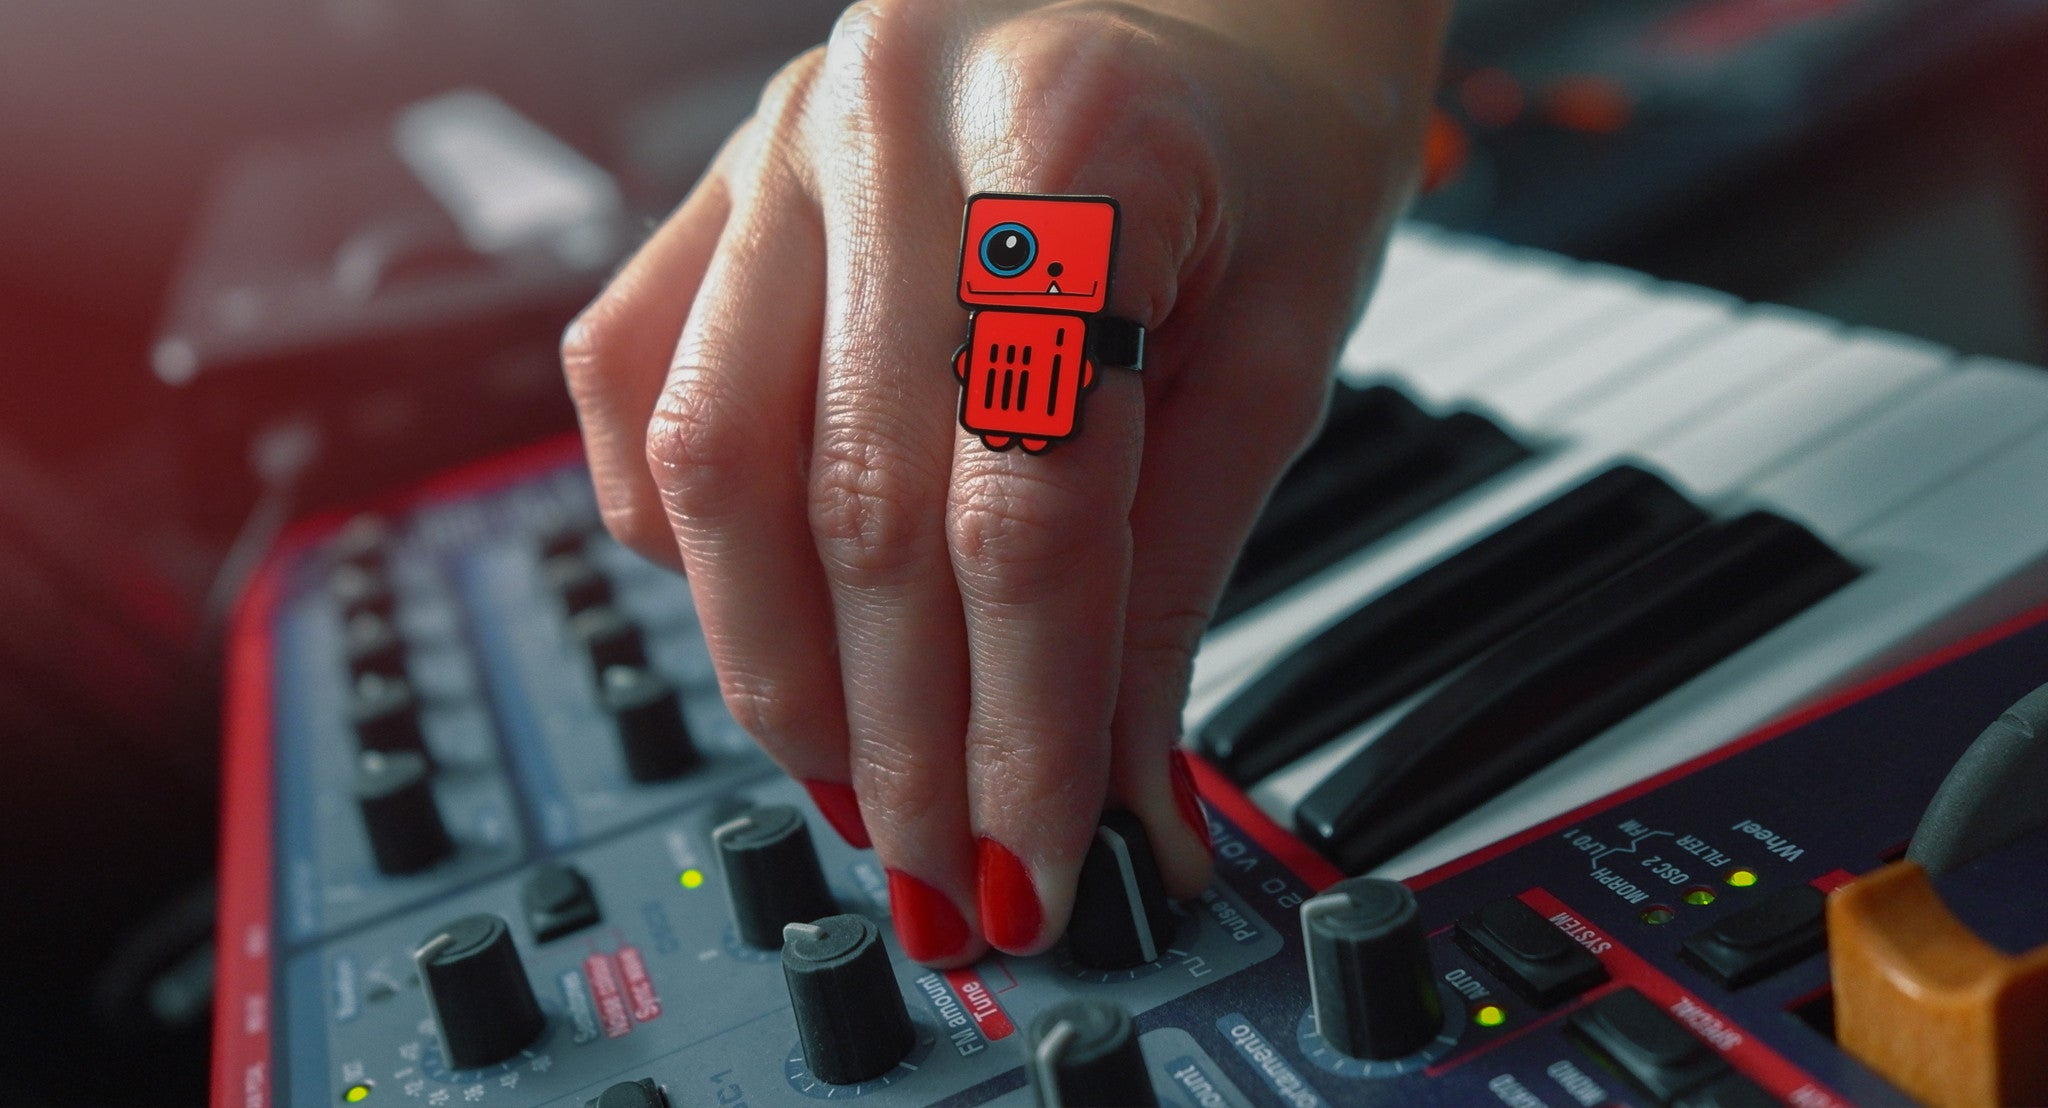 Infrared - Red Robot Ring - Keyboard Electronic Music - ROBOTA PROJECT